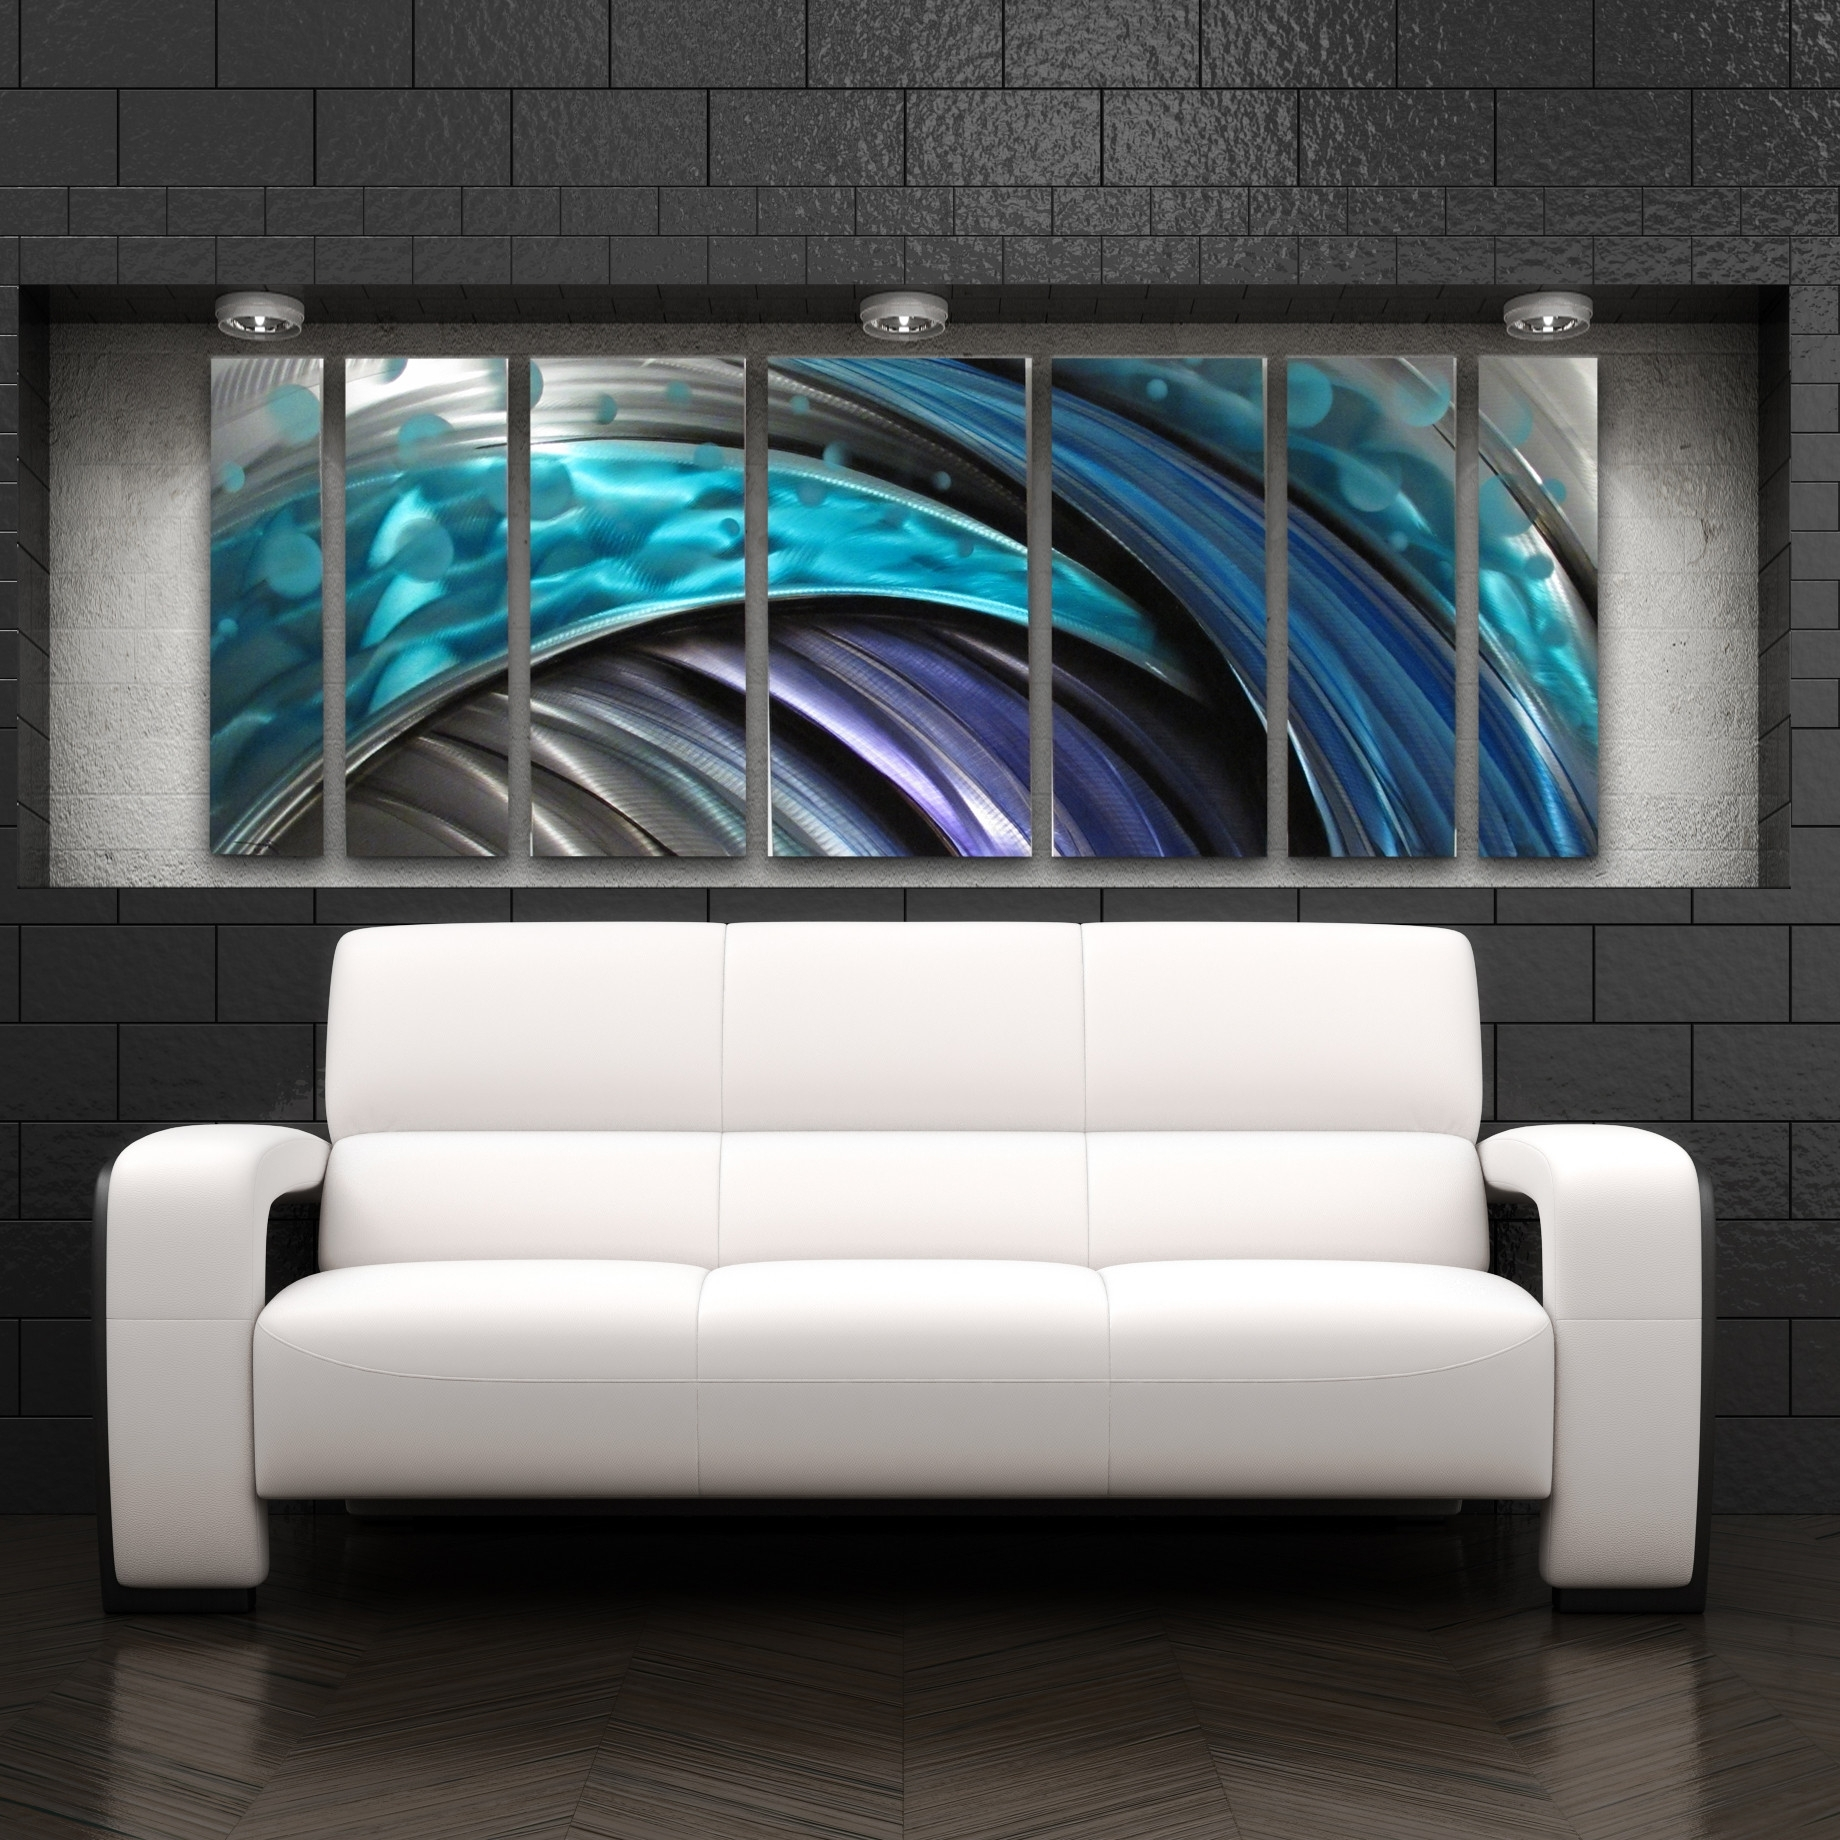 Fashionable Contemporary Metal Wall Art Sculpture Intended For Facts That Nobody Told You About Contemporary Metal Wall Art (View 7 of 15)